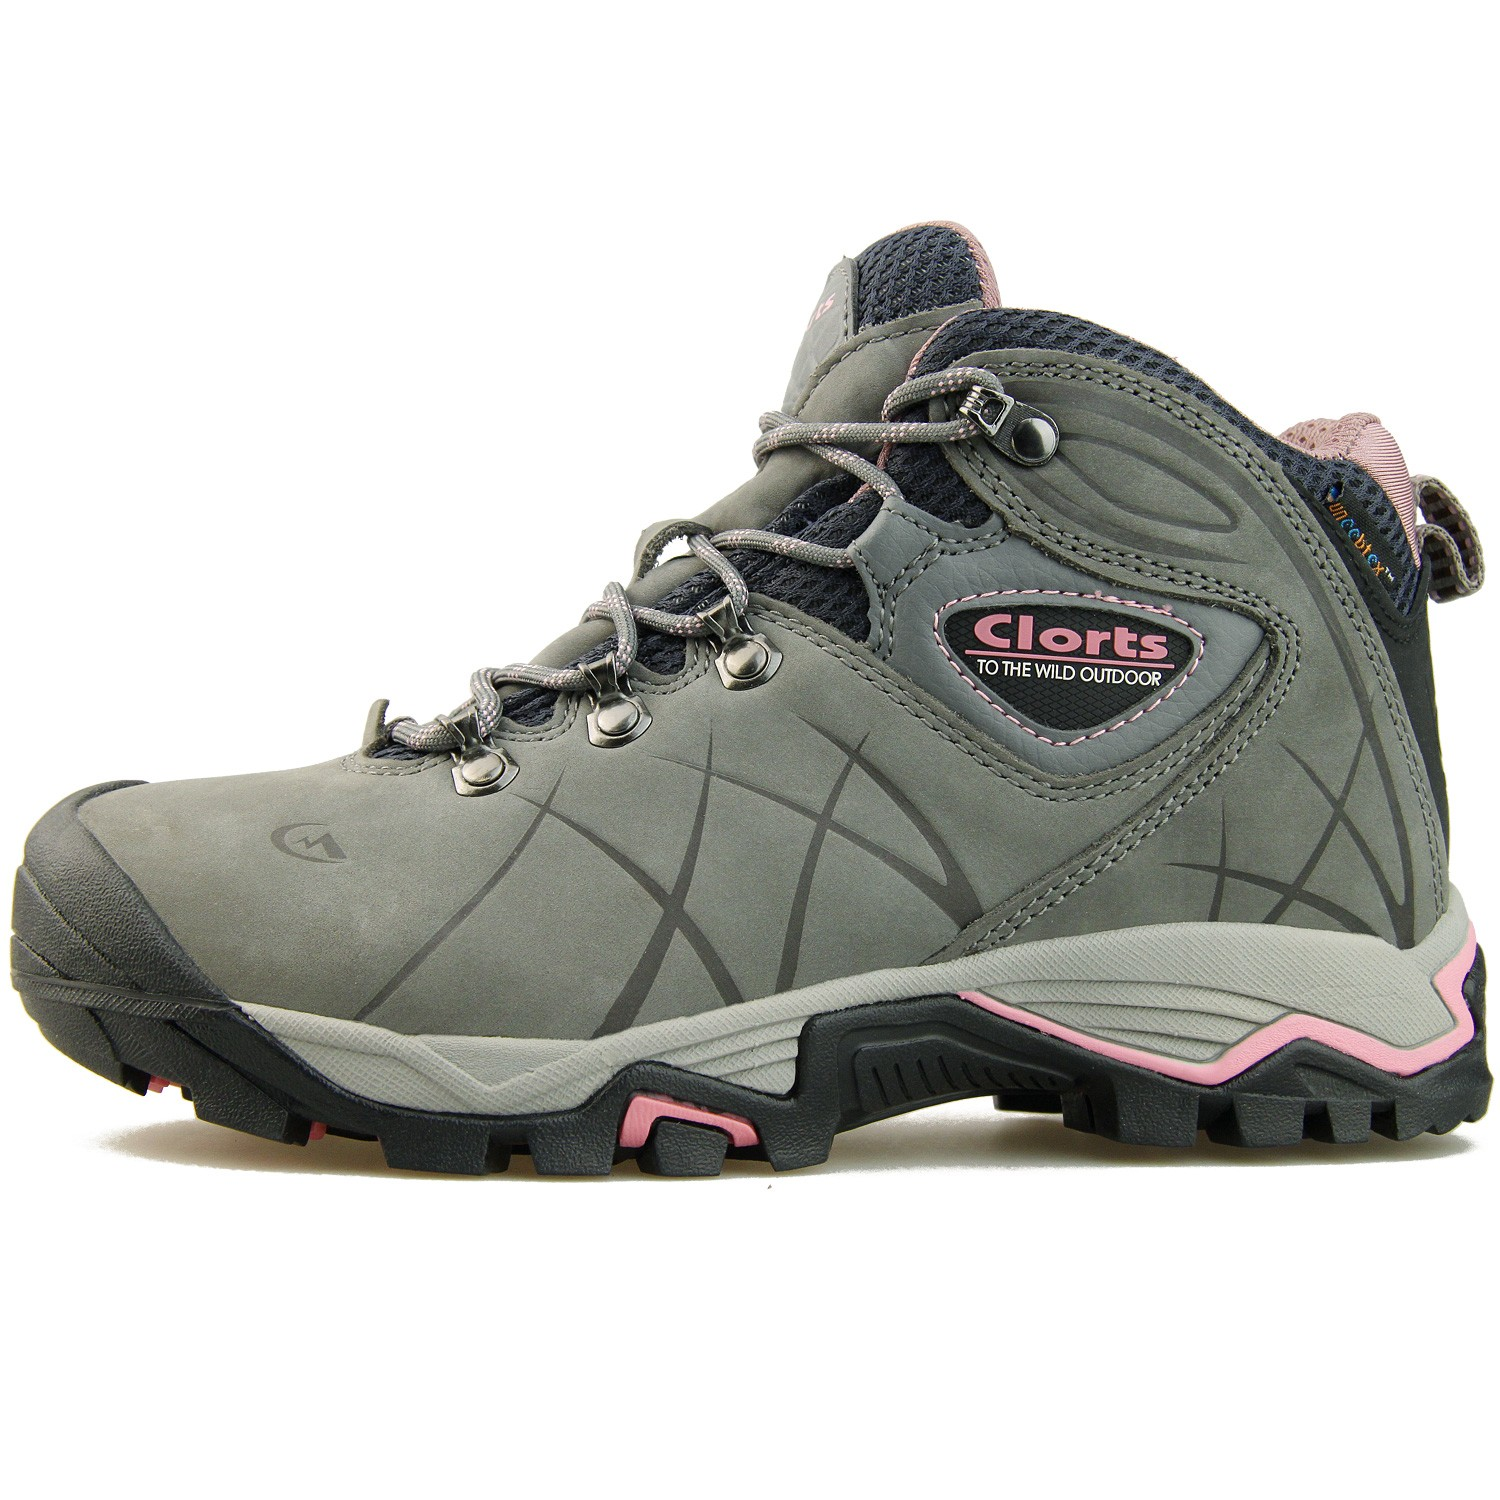 Rugged Mountaineering Hiking Boots Manufacturers, Rugged Mountaineering Hiking Boots Factory, Supply Rugged Mountaineering Hiking Boots